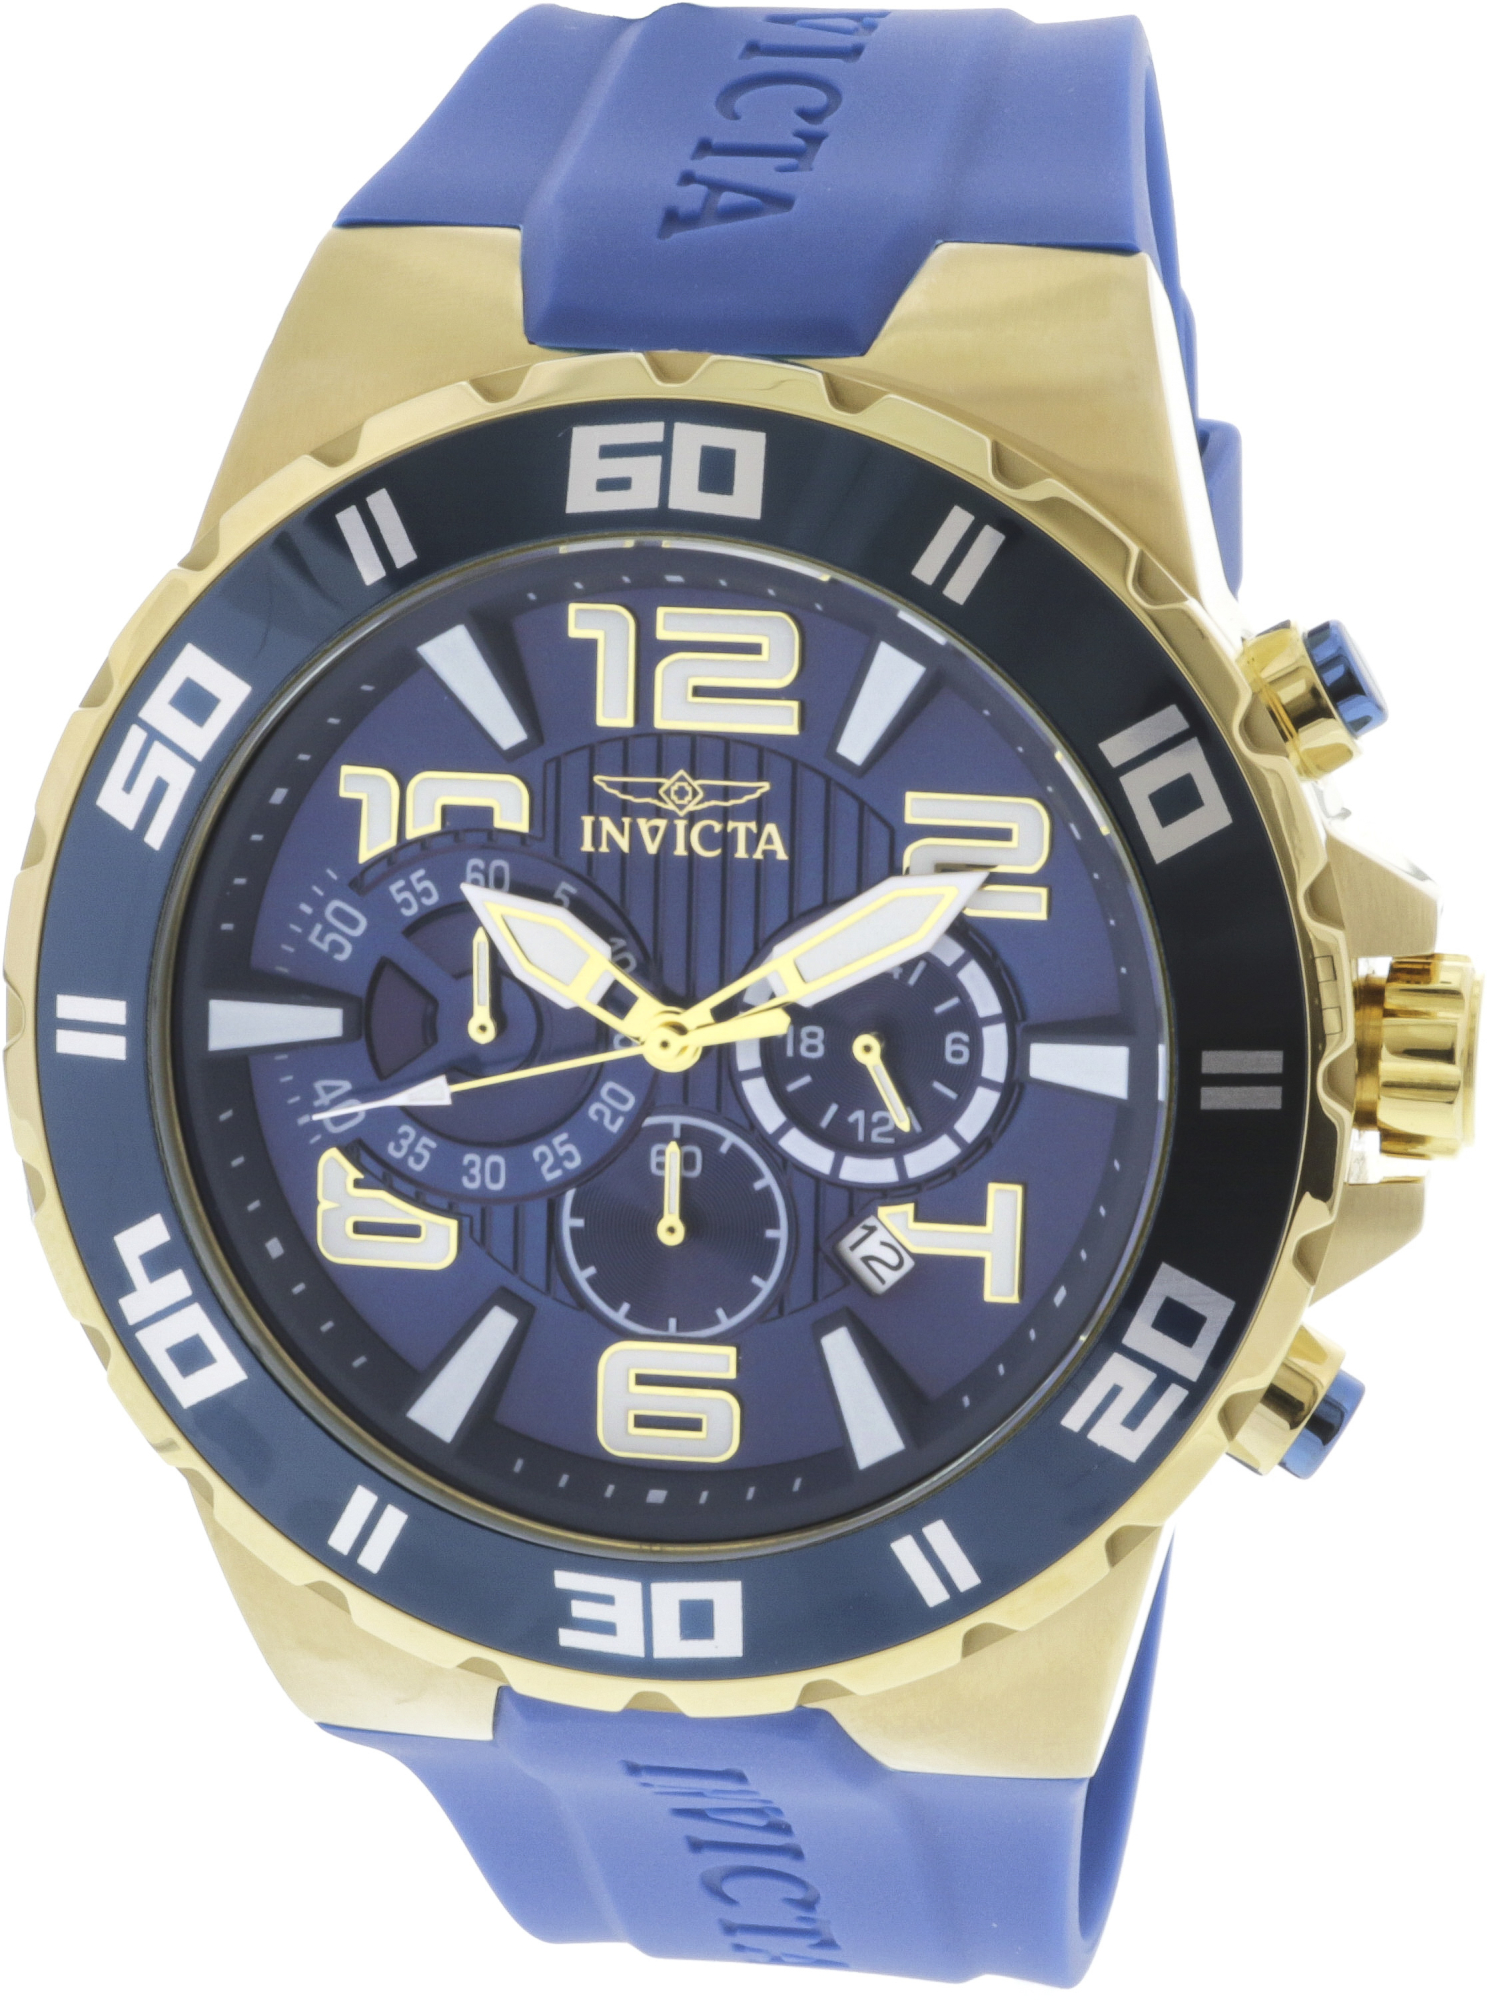 Invicta_Mens_24670_Gold_Silicone_Japanese_Chronograph_Diving_Watch